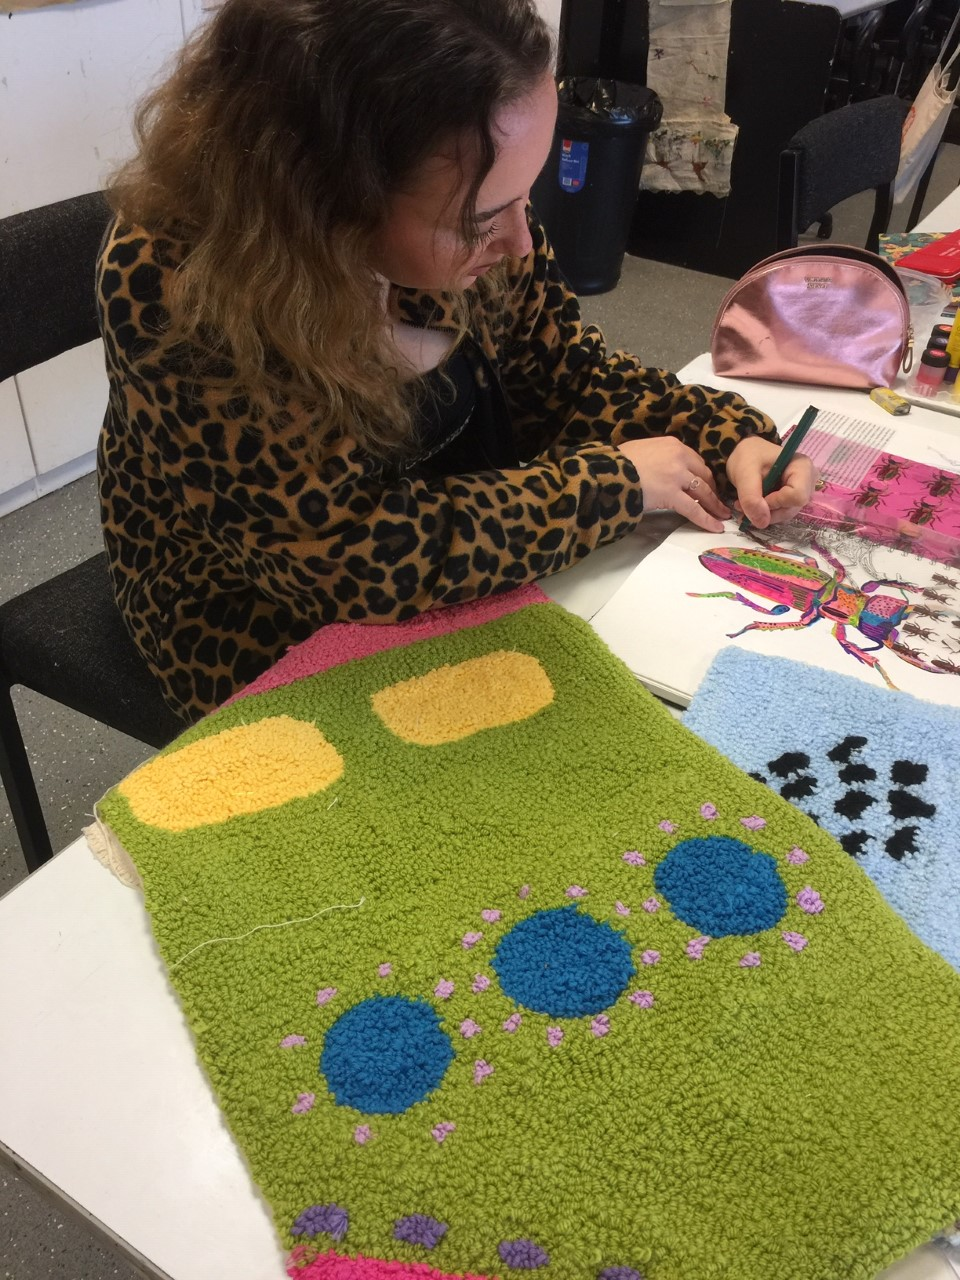 Second year ED Textiles student working in the studio